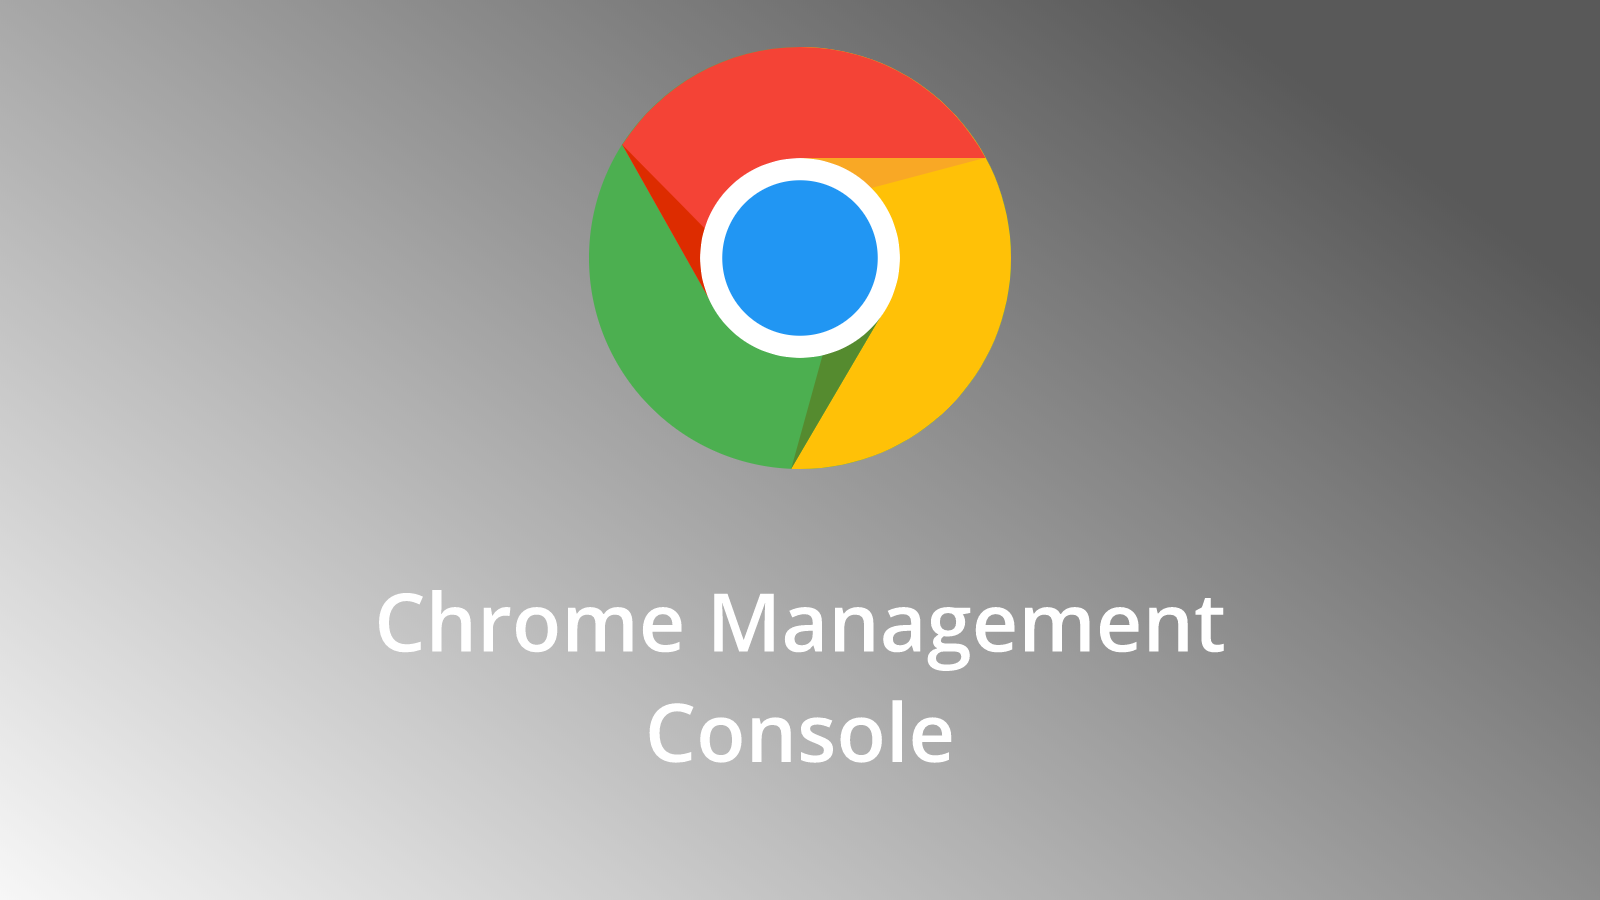 Citing longer lifespan, Google bumps price of Chrome Management License